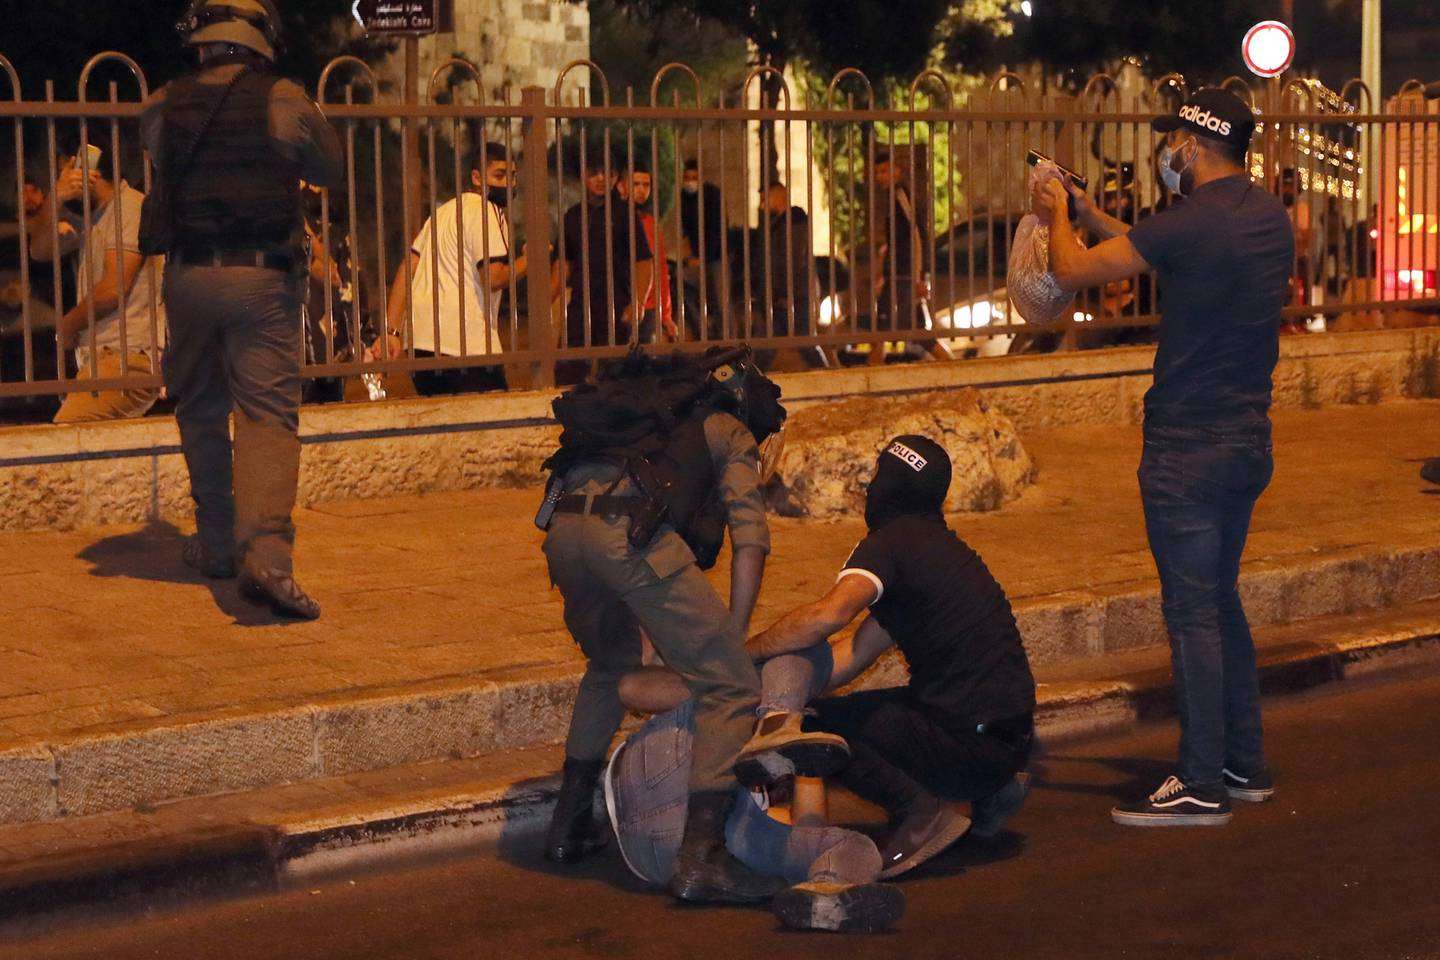 Israeli security forces arrest a Palestinian man near the Damascus Gate to the Old City of Jerusalem. Photo / AP